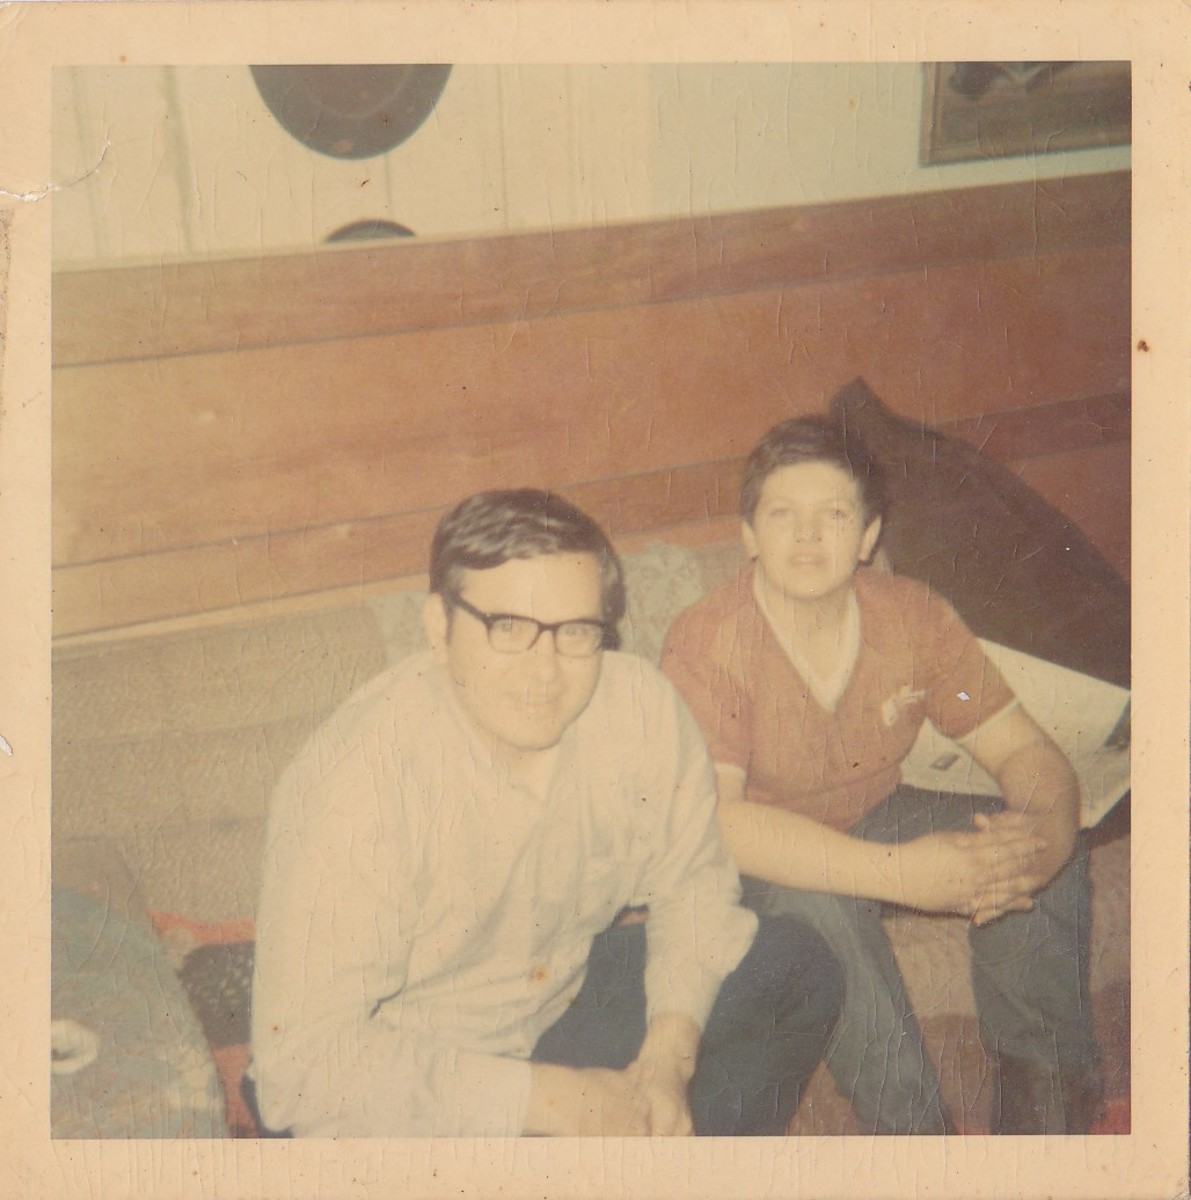 picture taken in March 1970 while in Navy and home on leave.  My brother Philip is seated next to me.